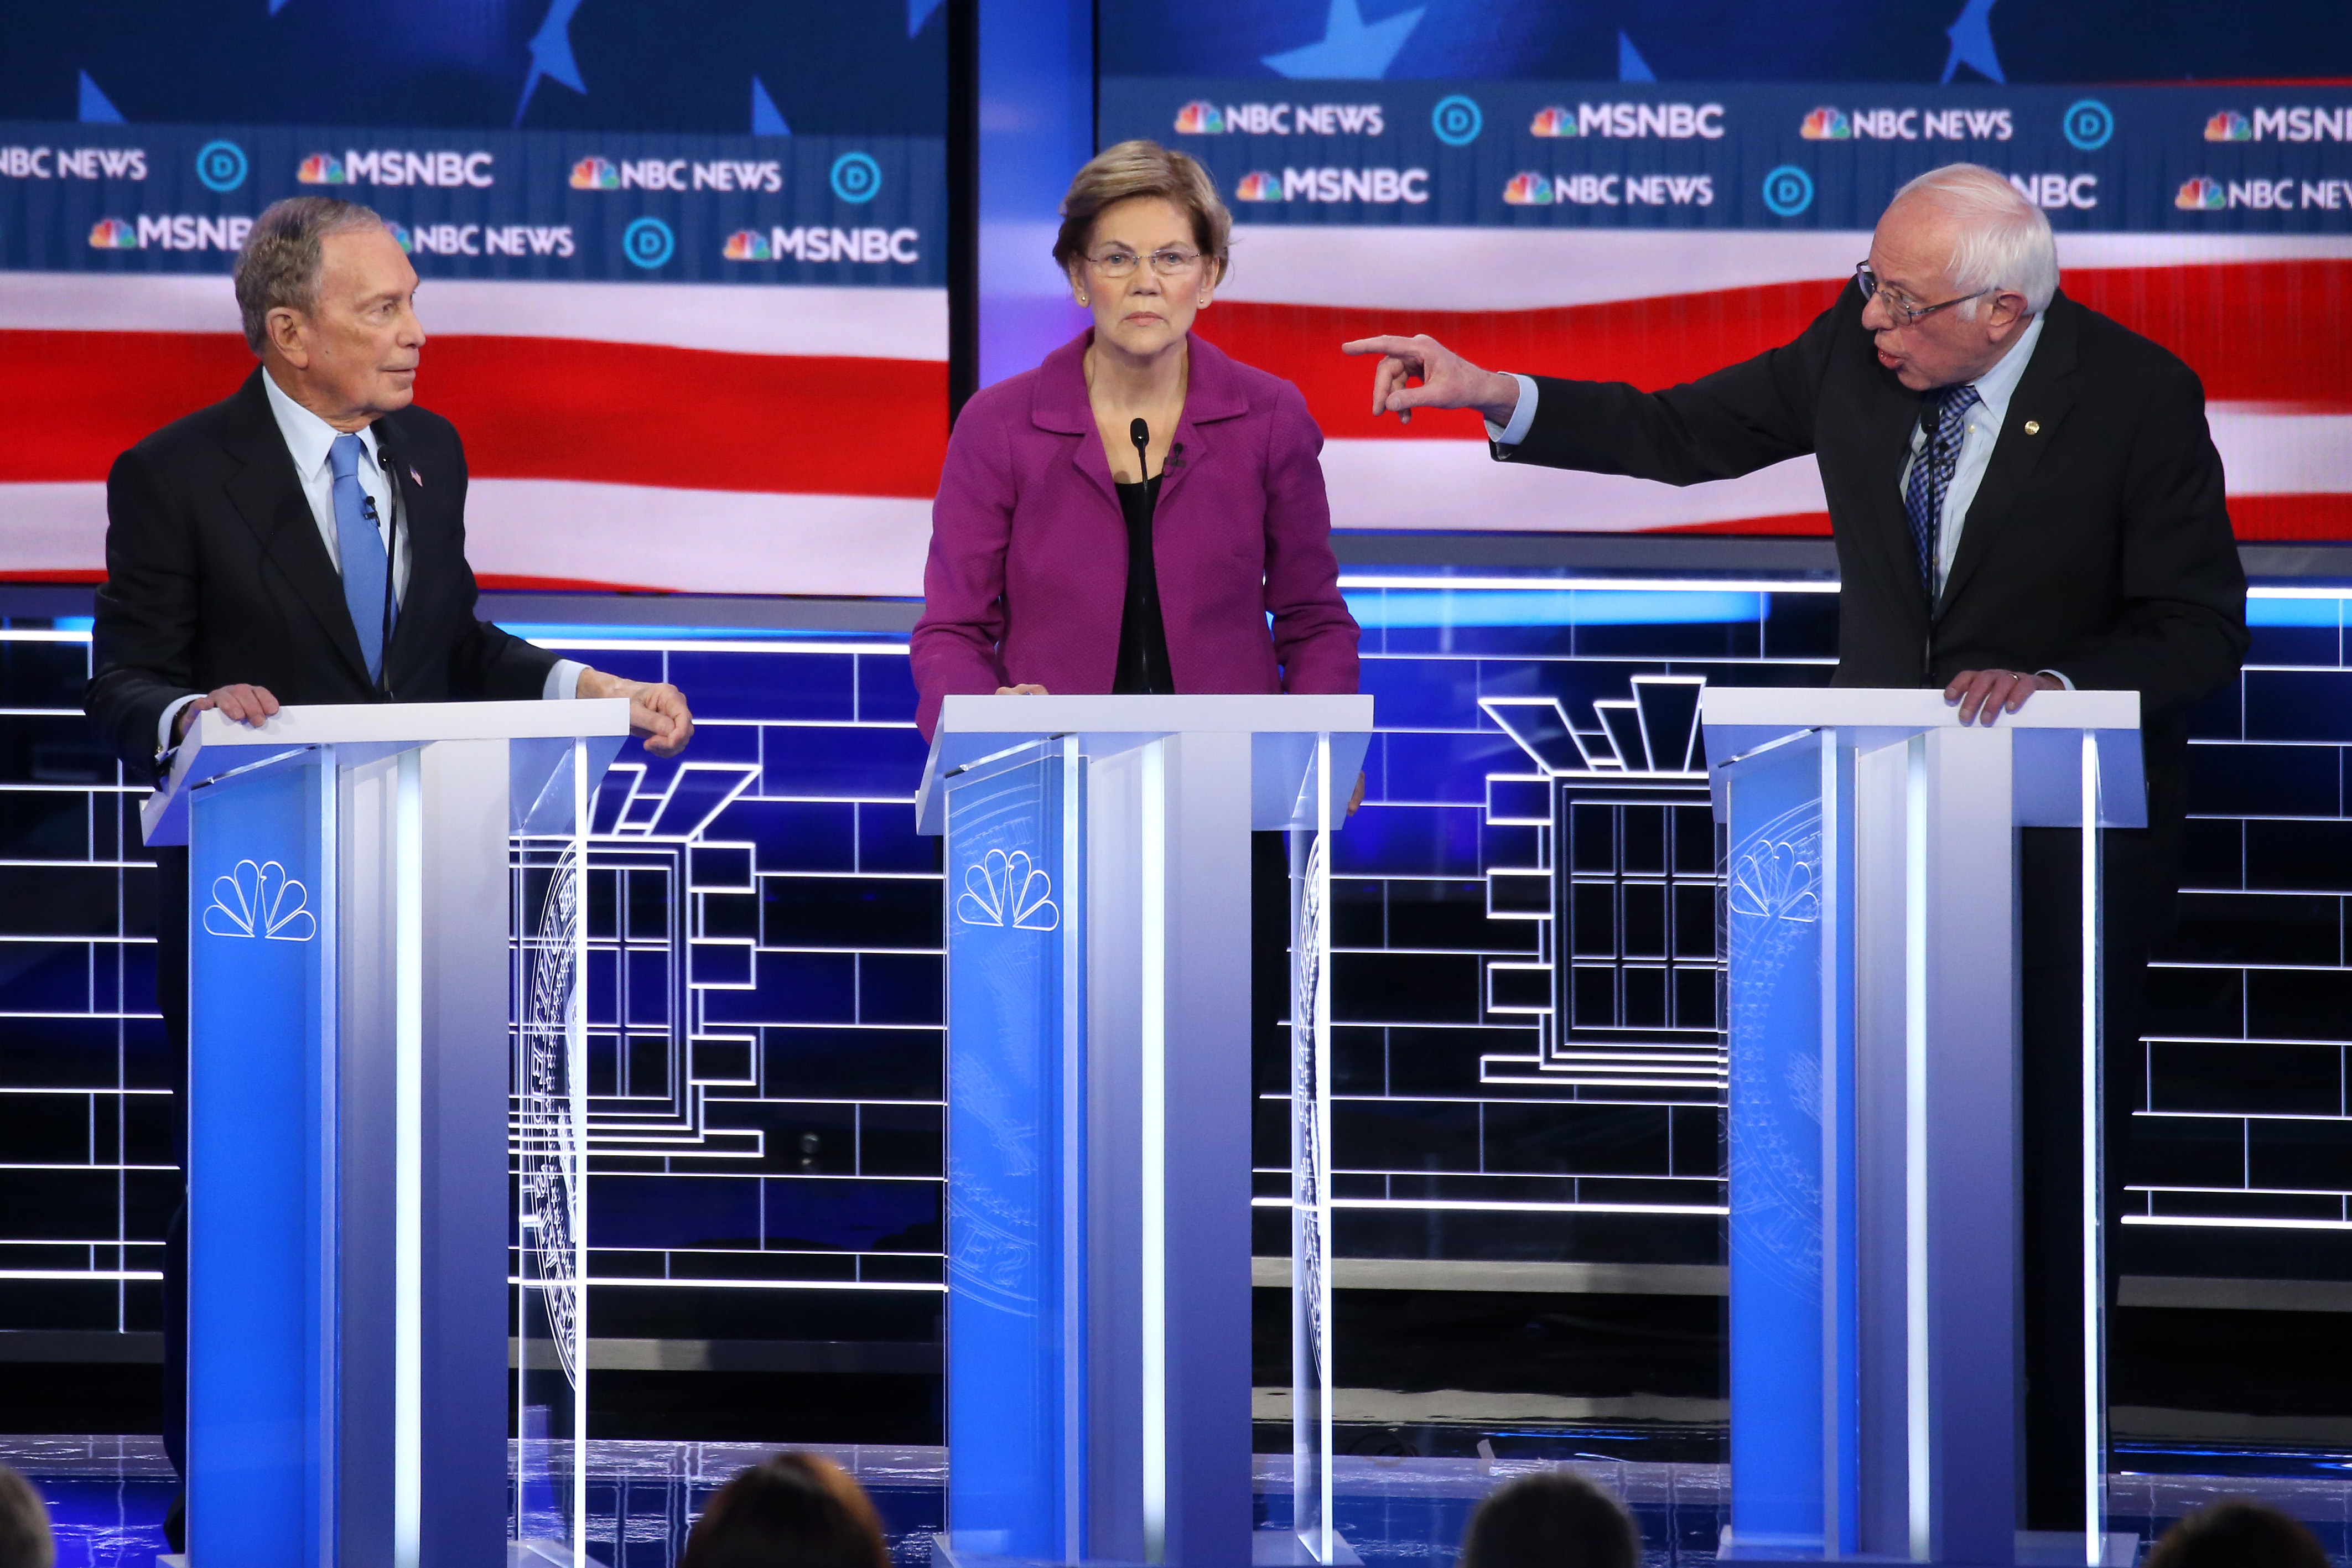 LAS VEGAS, NEVADA - FEBRUARY 19: Democratic presidential candidate Sen. Bernie Sanders (I-VT) (R) gestures as Sen. Elizabeth Warren (D-MA) and former New York City mayor Mike Bloomberg listen during the Democratic presidential primary debate at Paris Las Vegas on February 19, 2020 in Las Vegas, Nevada. Six candidates qualified for the third Democratic presidential primary debate of 2020, which comes just days before the Nevada caucuses on February 22. (Photo by Mario Tama/Getty Images)